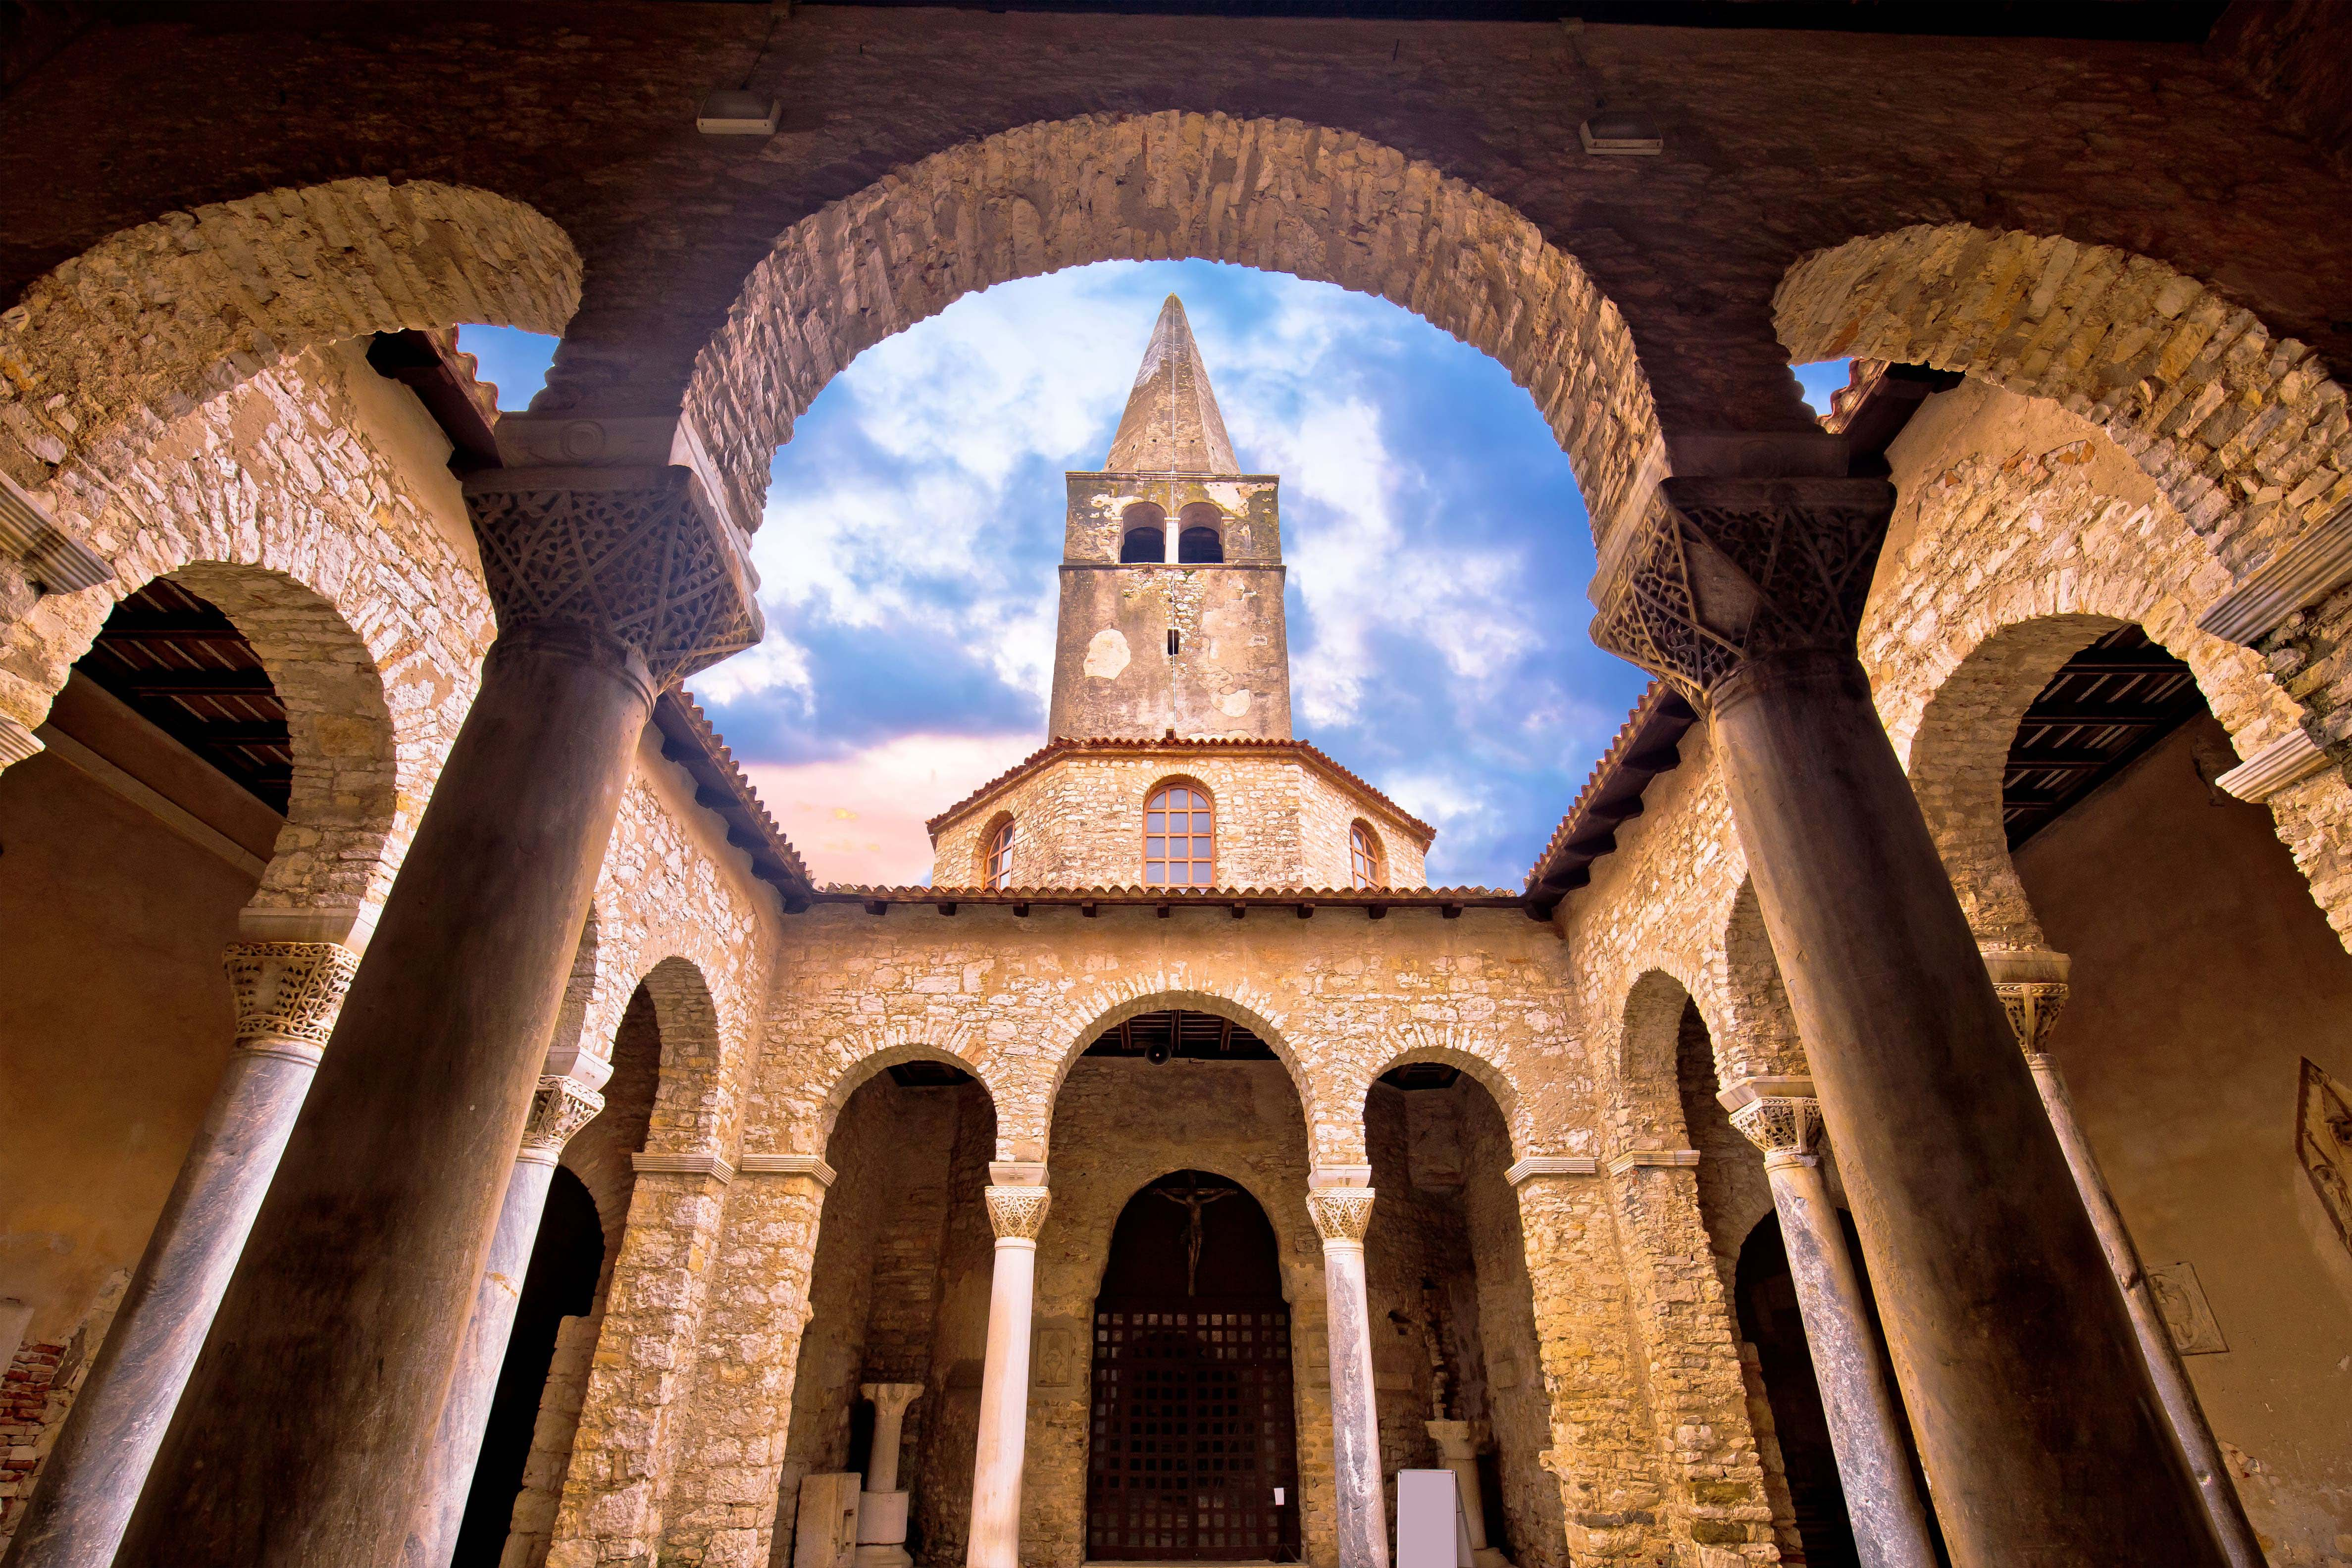 What you can expect when visiting Porec's grandiose Euphrasian Basilica